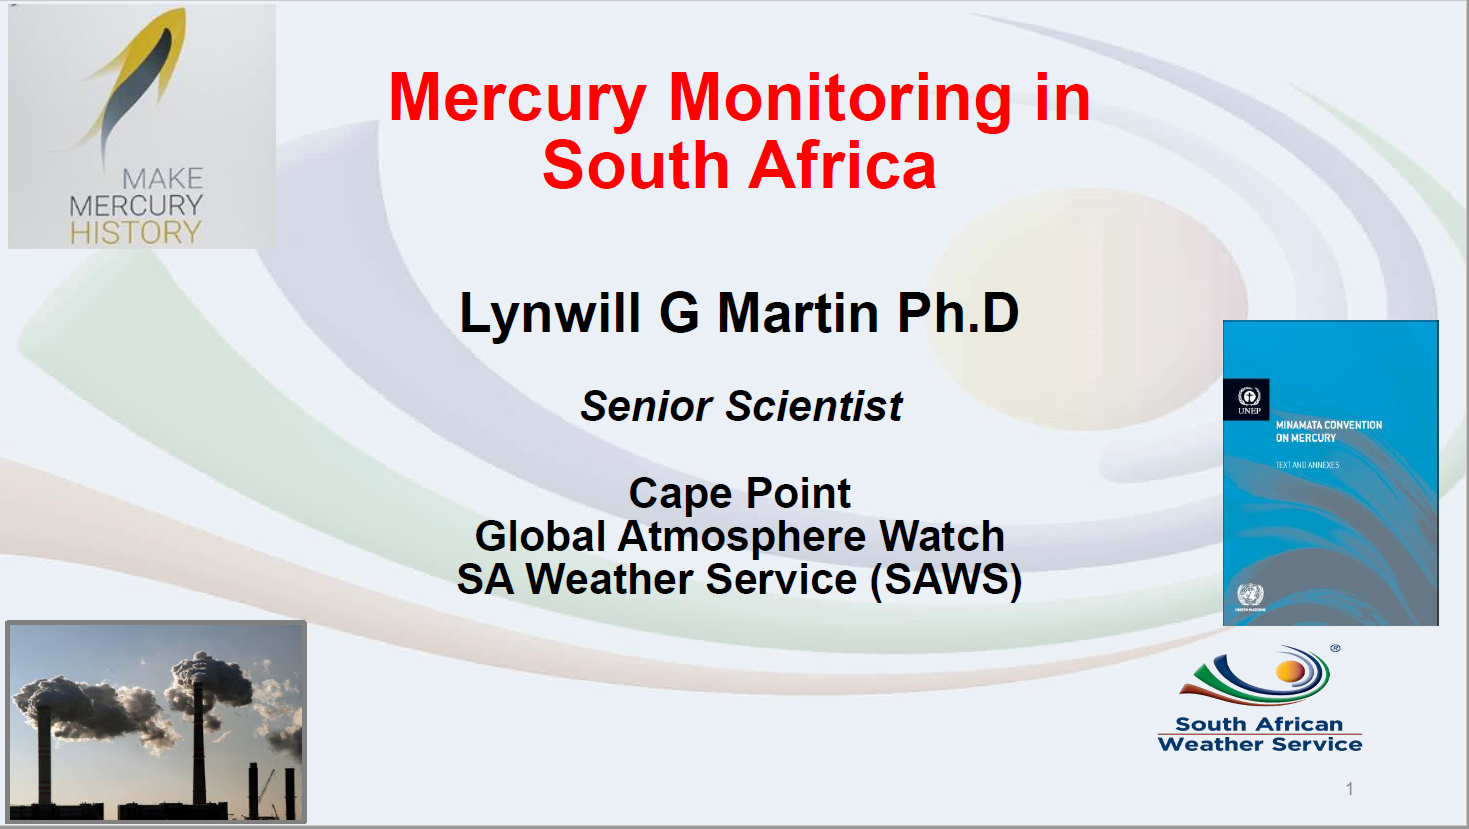 First page of Mercury Monitoring in South Africa